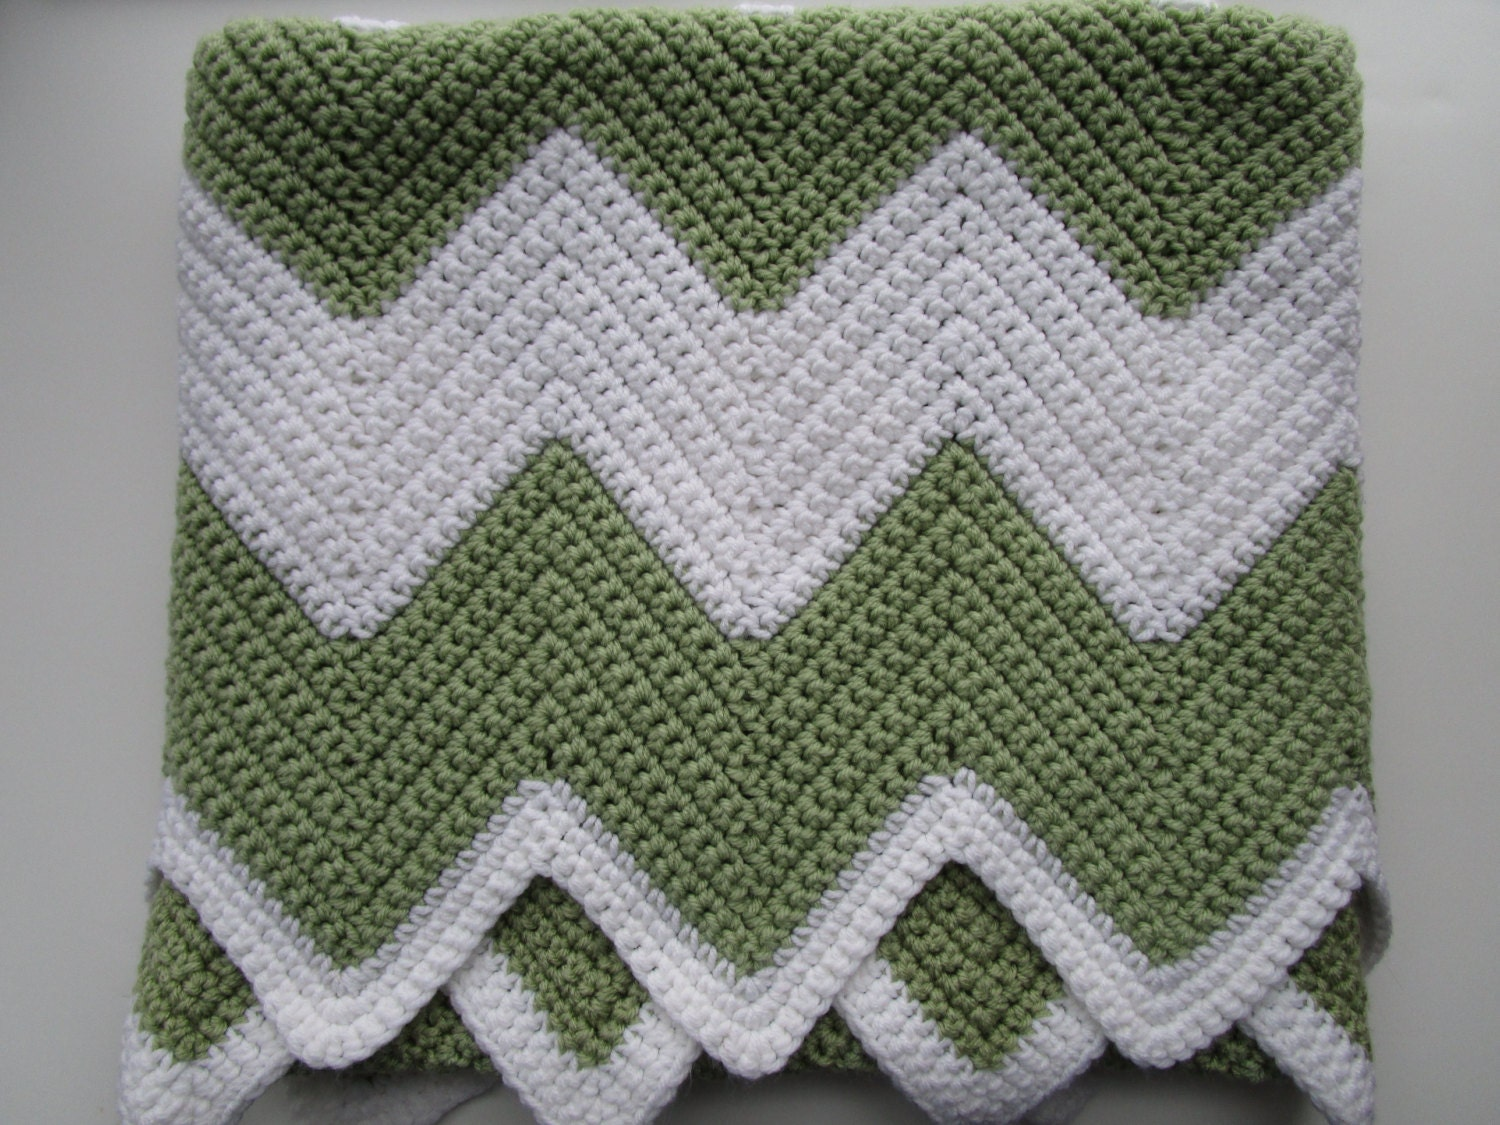 Free Baby Chevron Crochet Pattern : Crochet Chevron Baby Blanket www.galleryhip.com - The ...